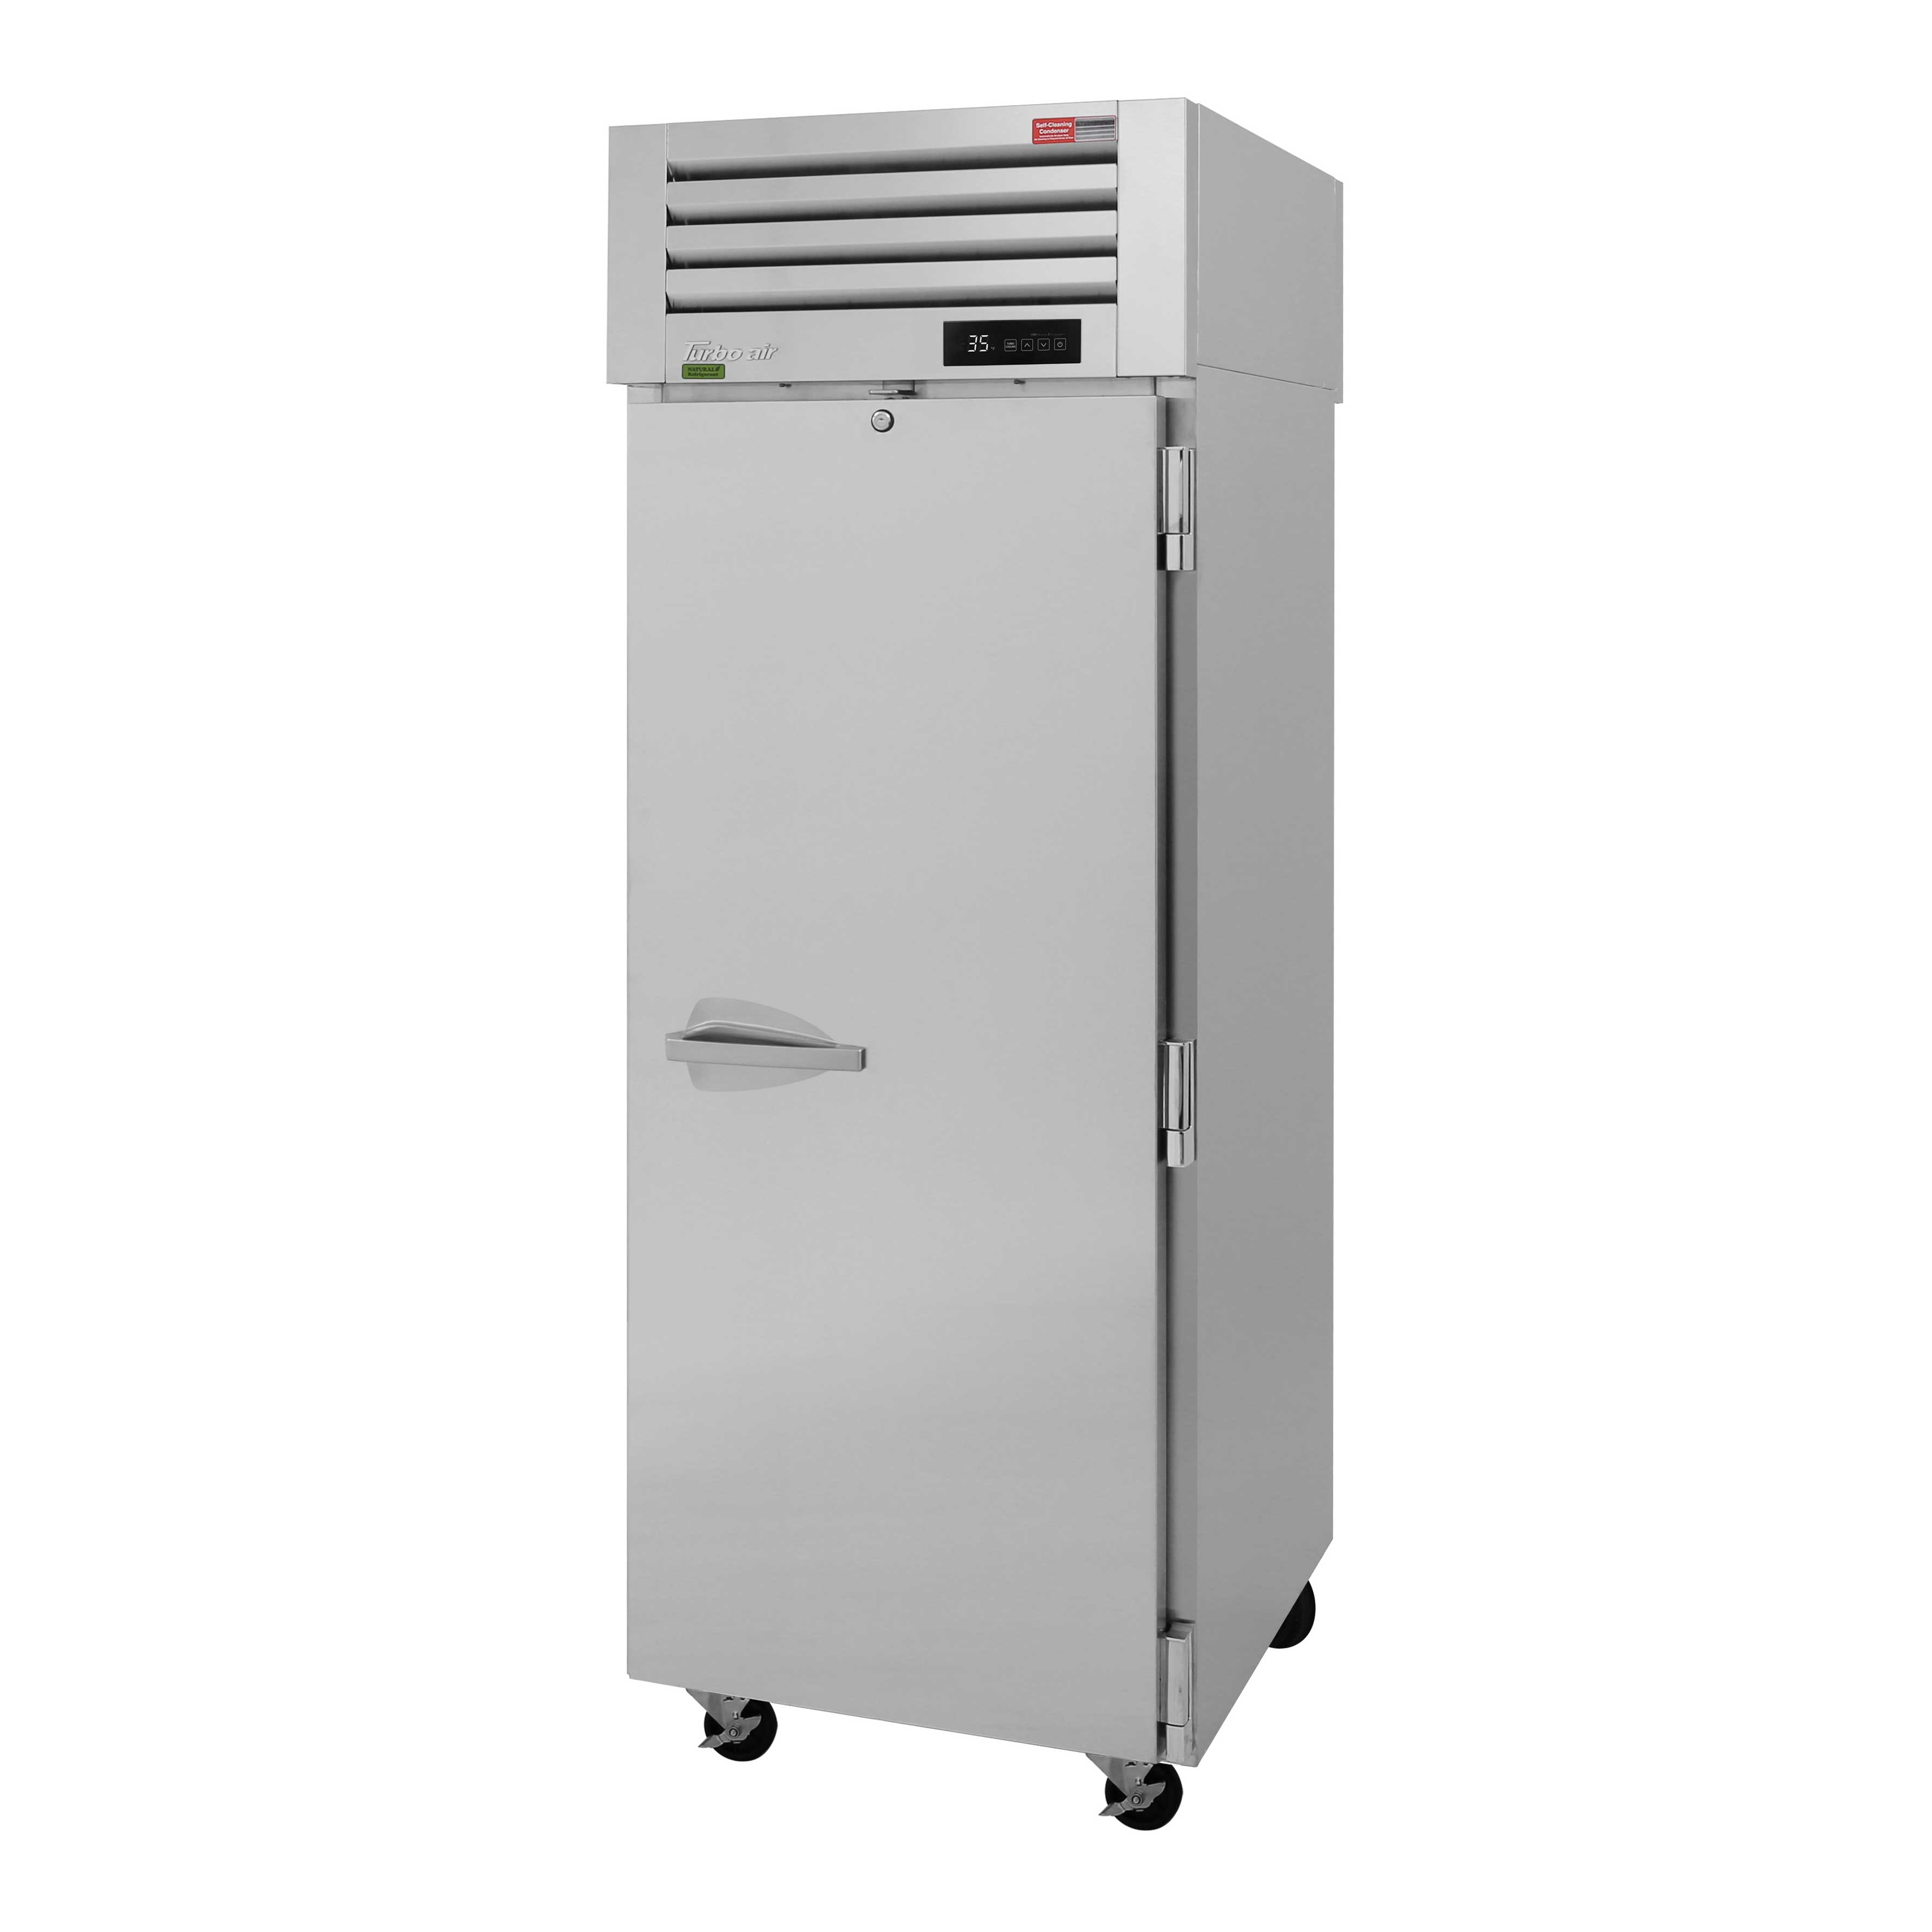 Turbo Air PRO-26R-N refrigerator, reach-in